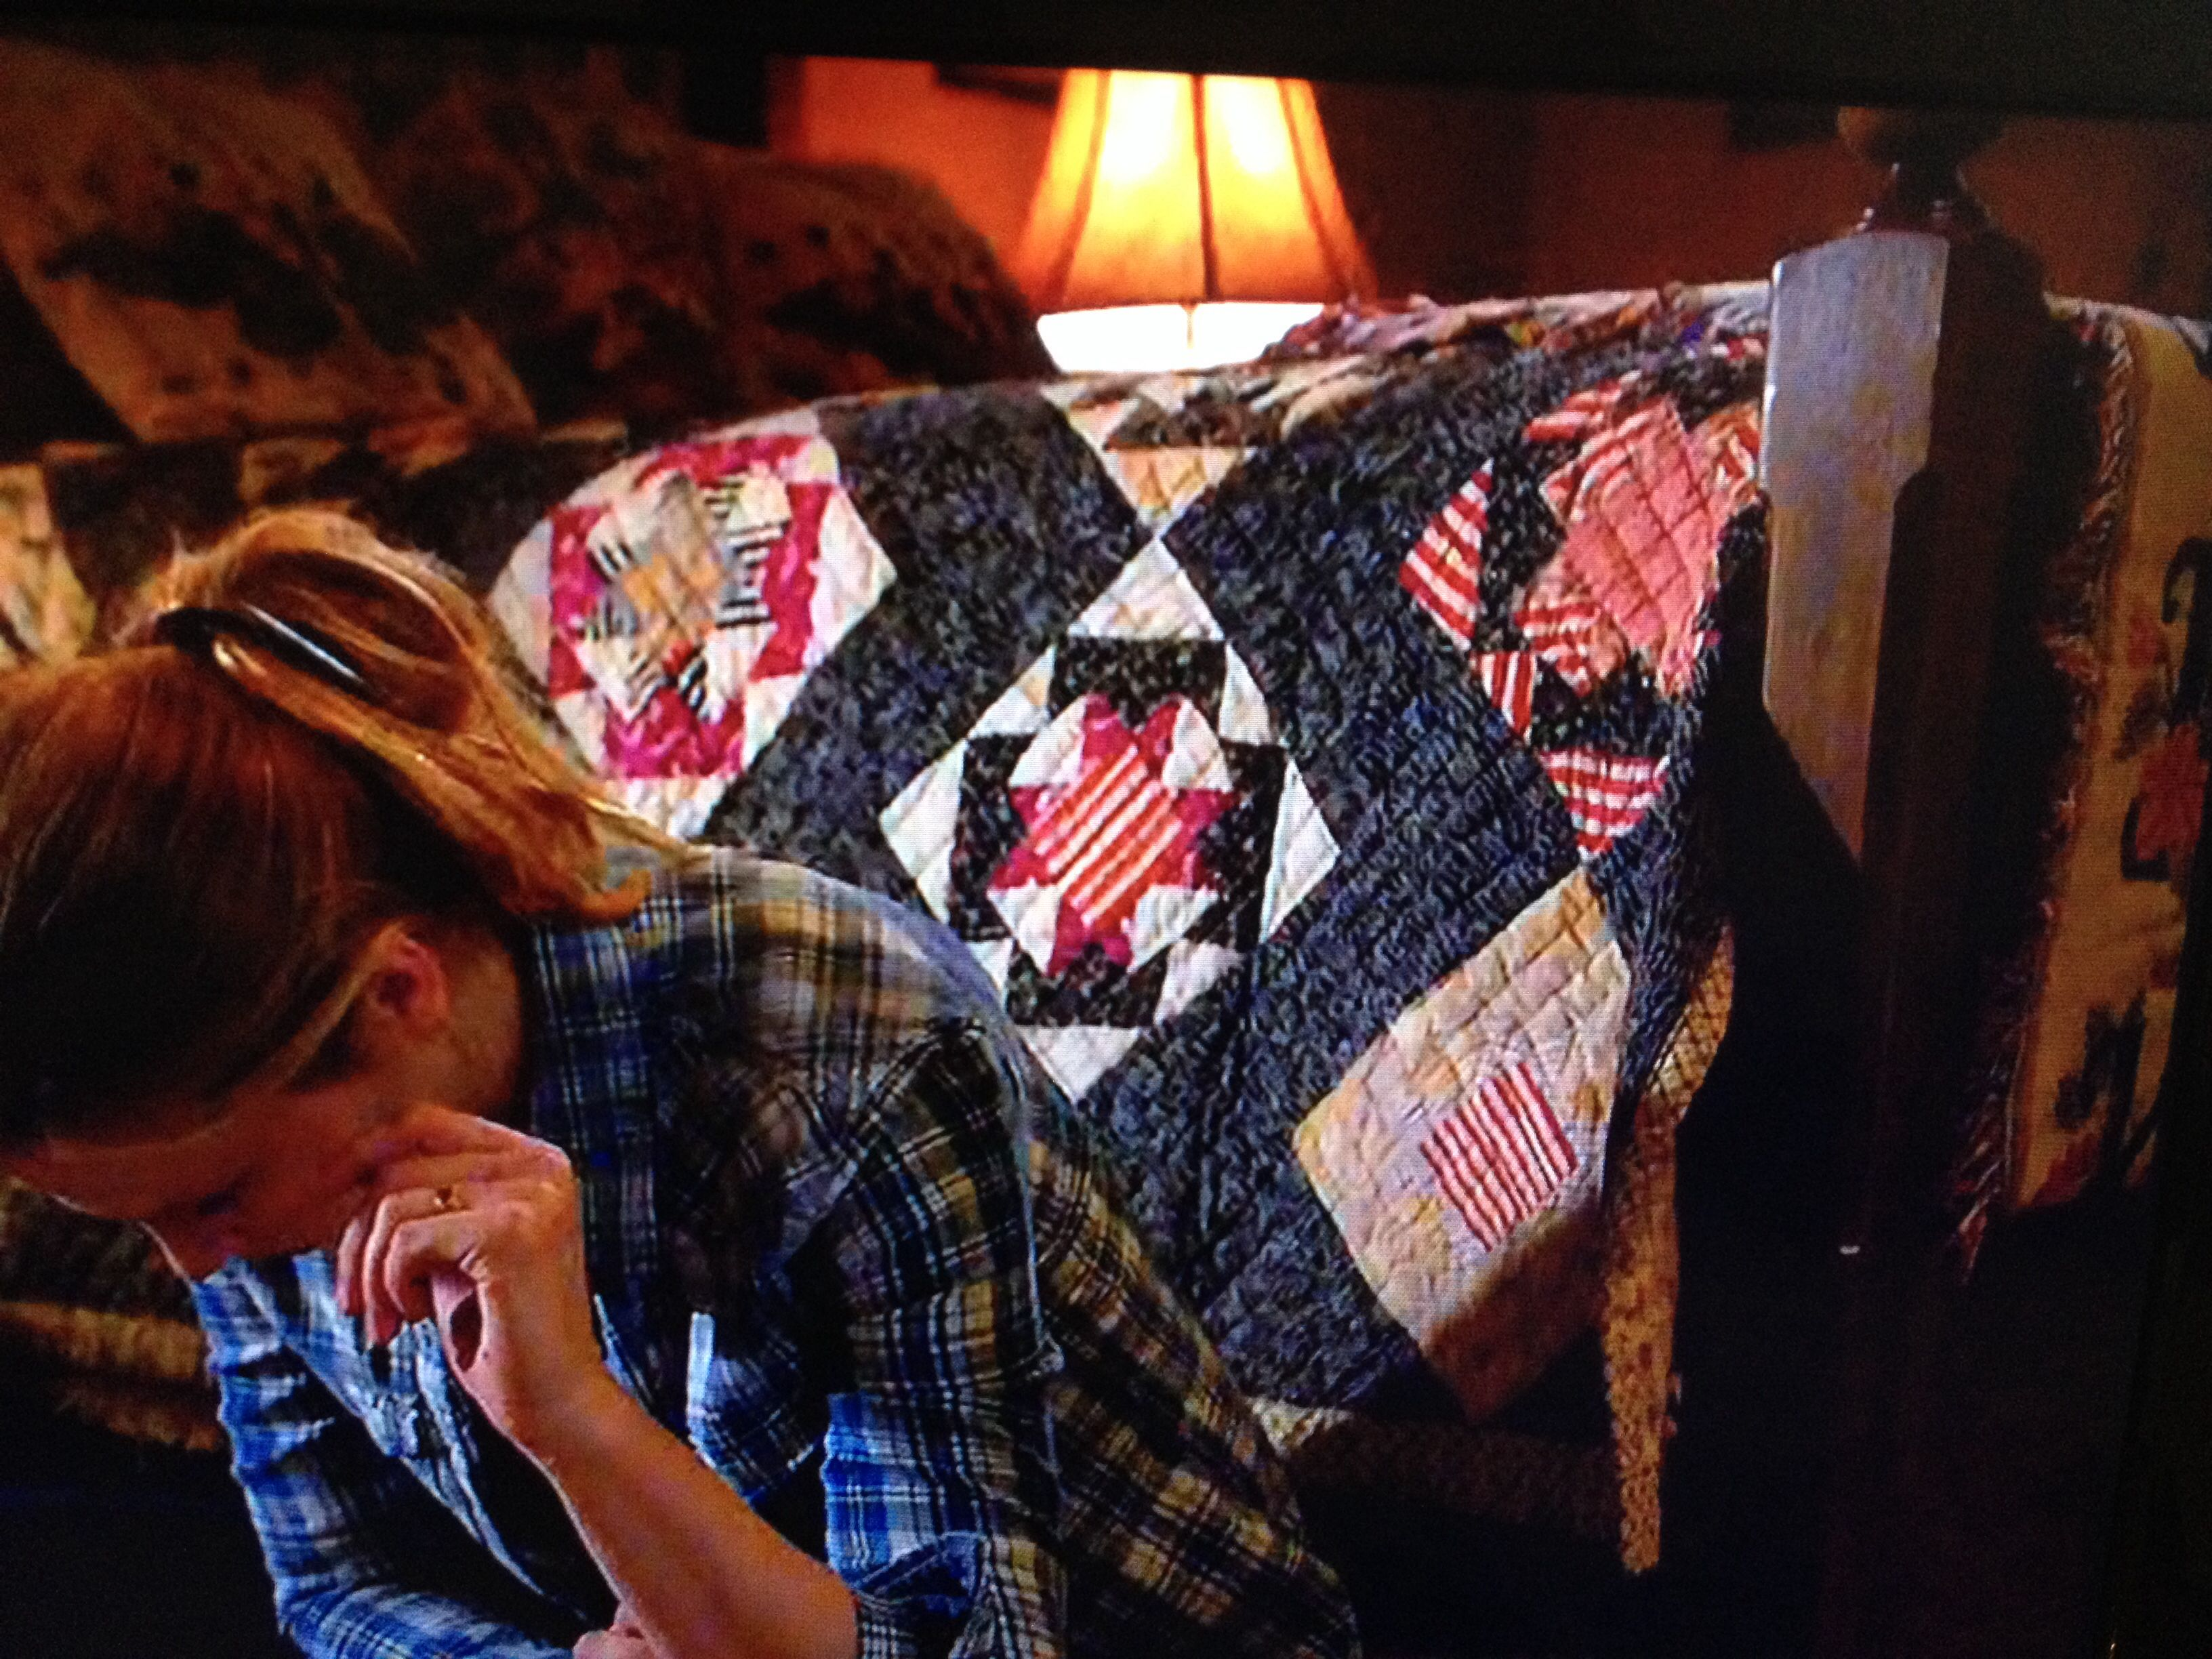 You might be a quilter when you take photos of quilts in the background of TV shows!